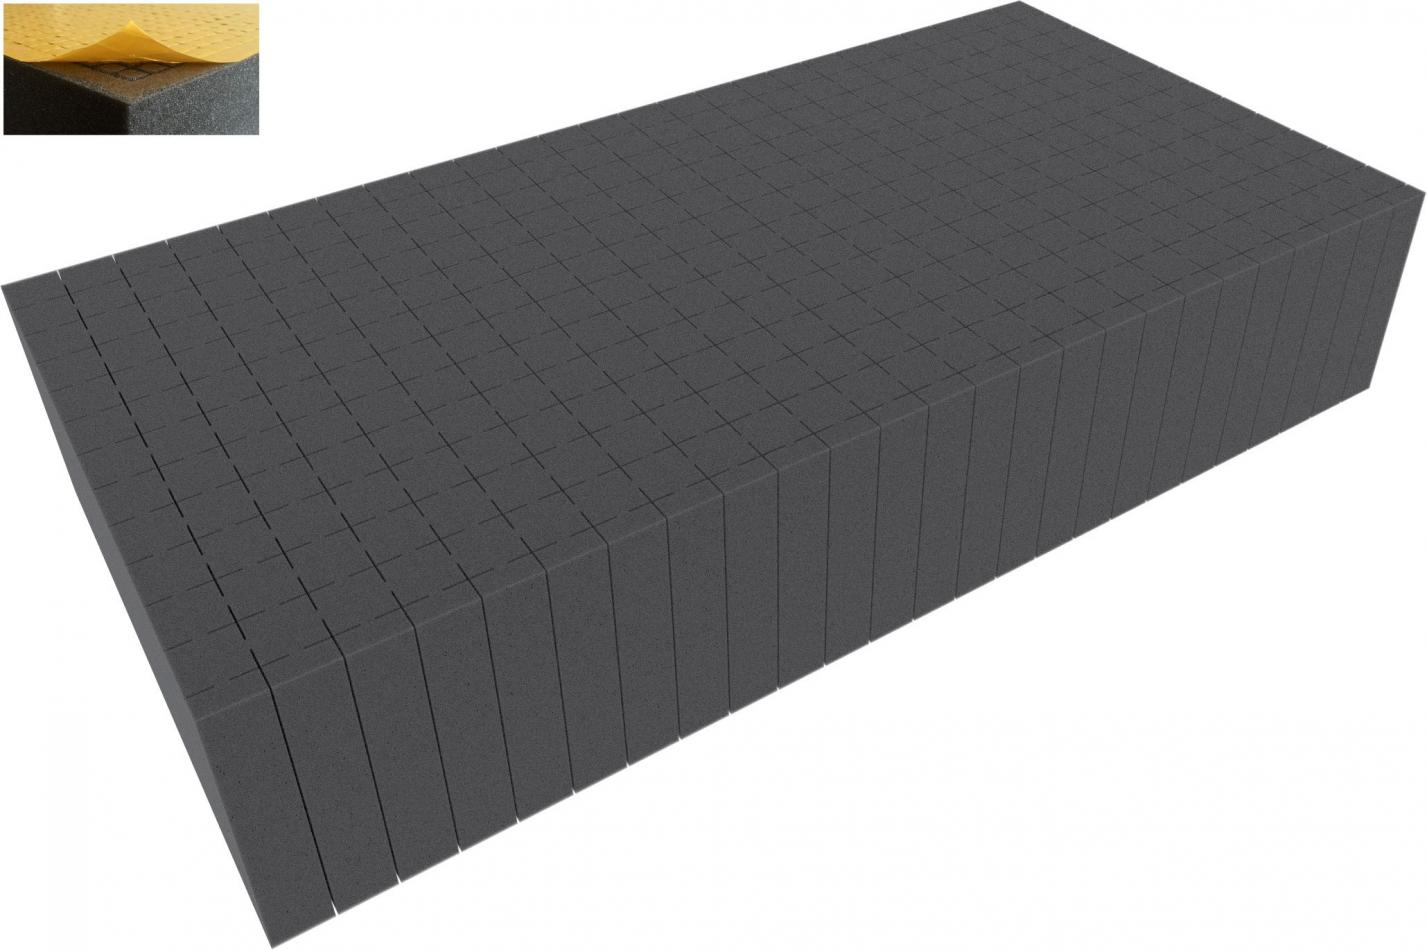 500 mm x 250 mm x 100 mm - Raster 20 mm - Pick and Pluck / Pre-Cubed foam tray self-adhesive